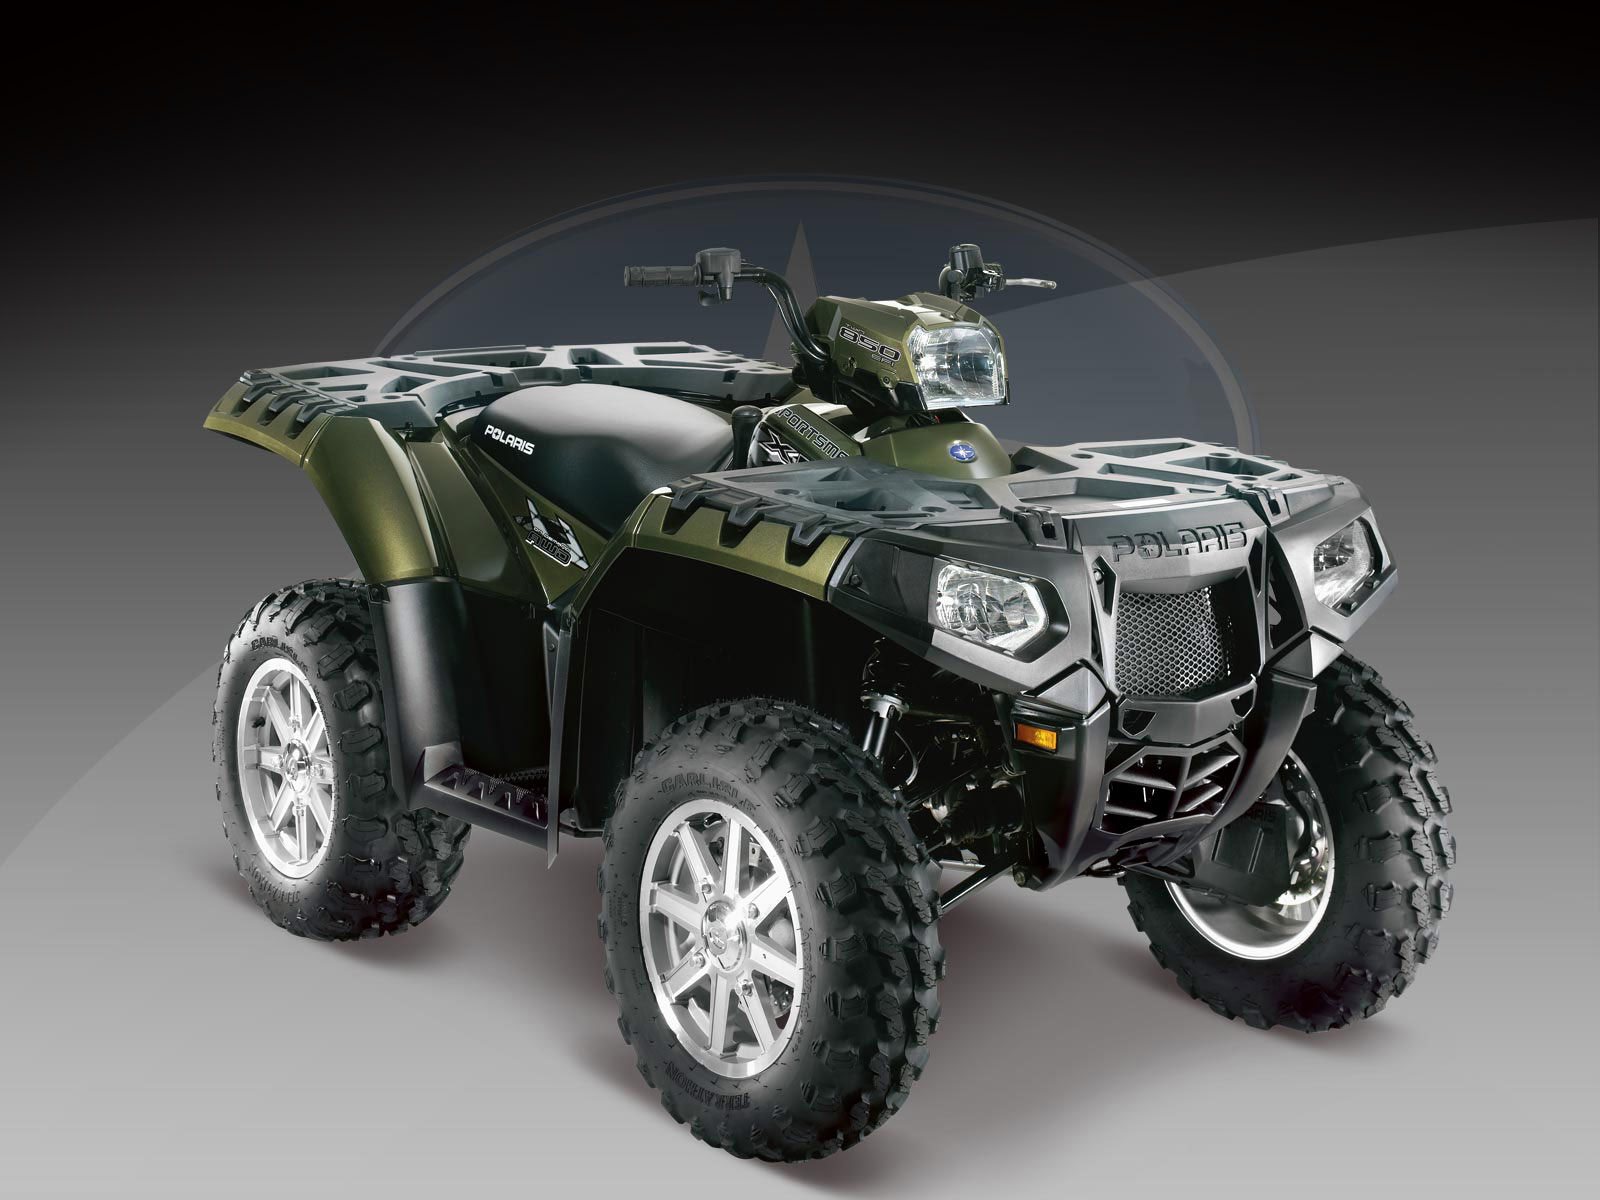 2010 polaris sportsman 850 xp eps atv wallpapers, specifications